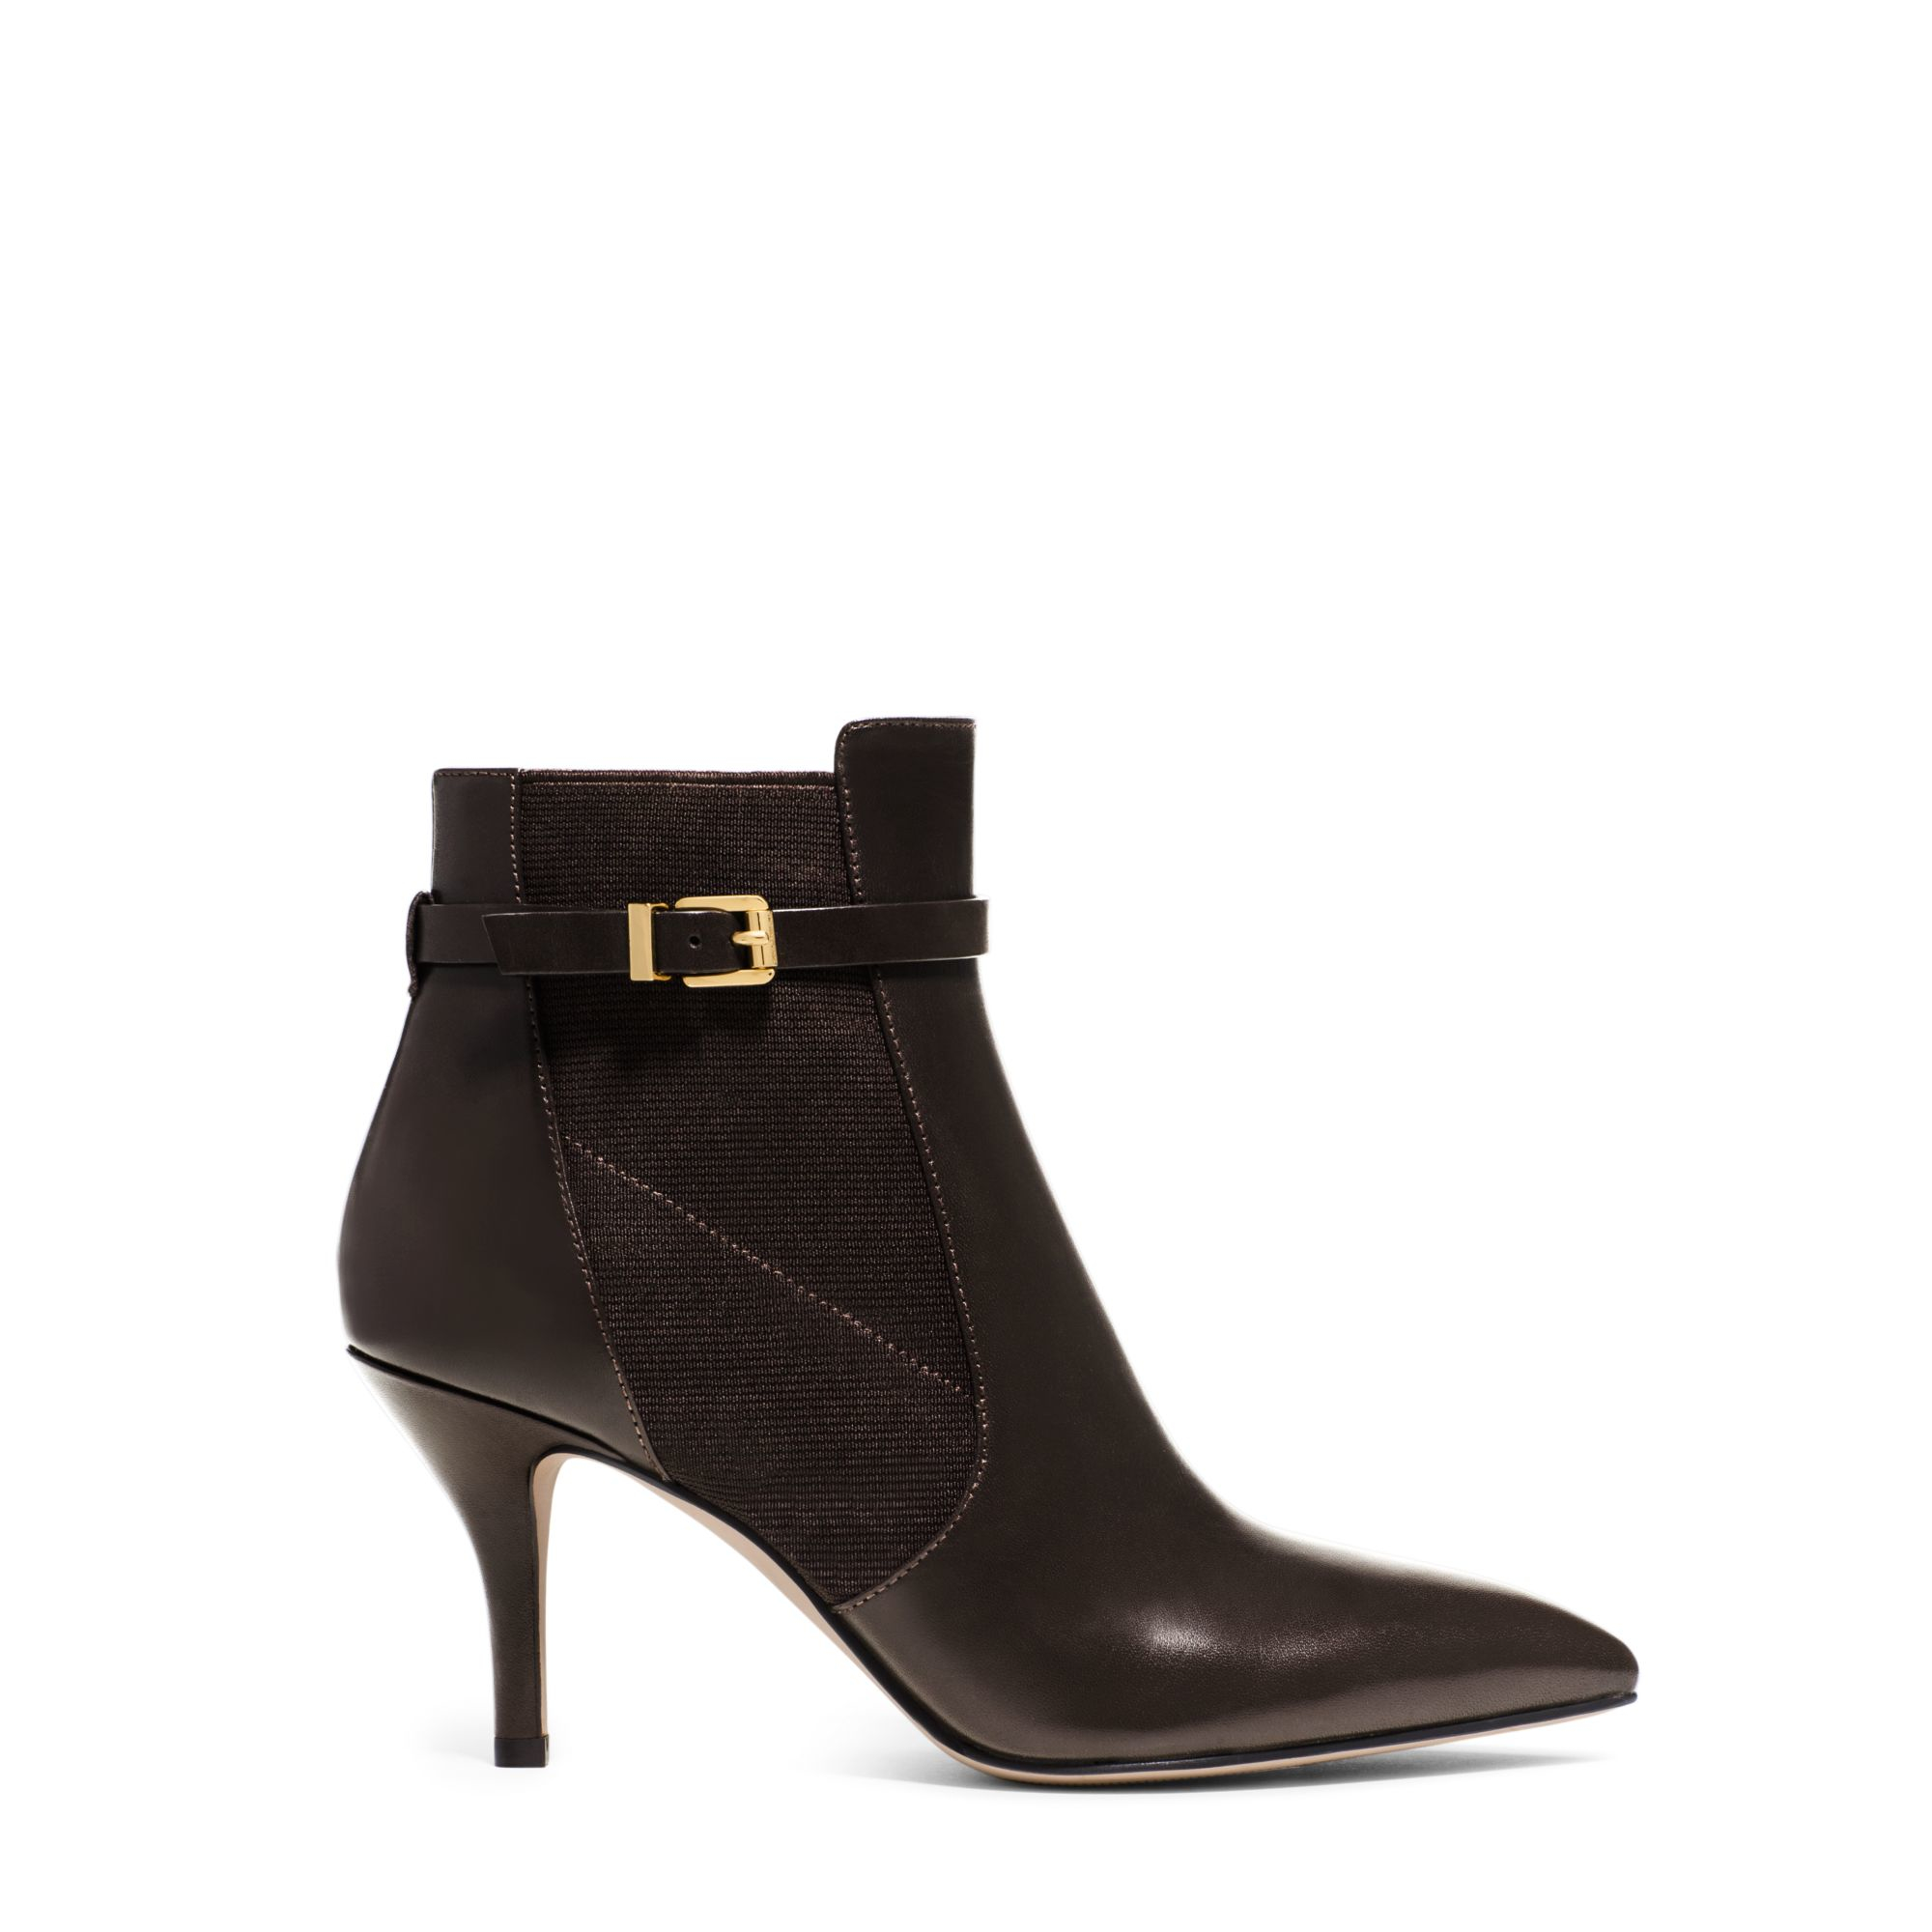 michael kors woods leather ankle boot in brown chocolate lyst. Black Bedroom Furniture Sets. Home Design Ideas